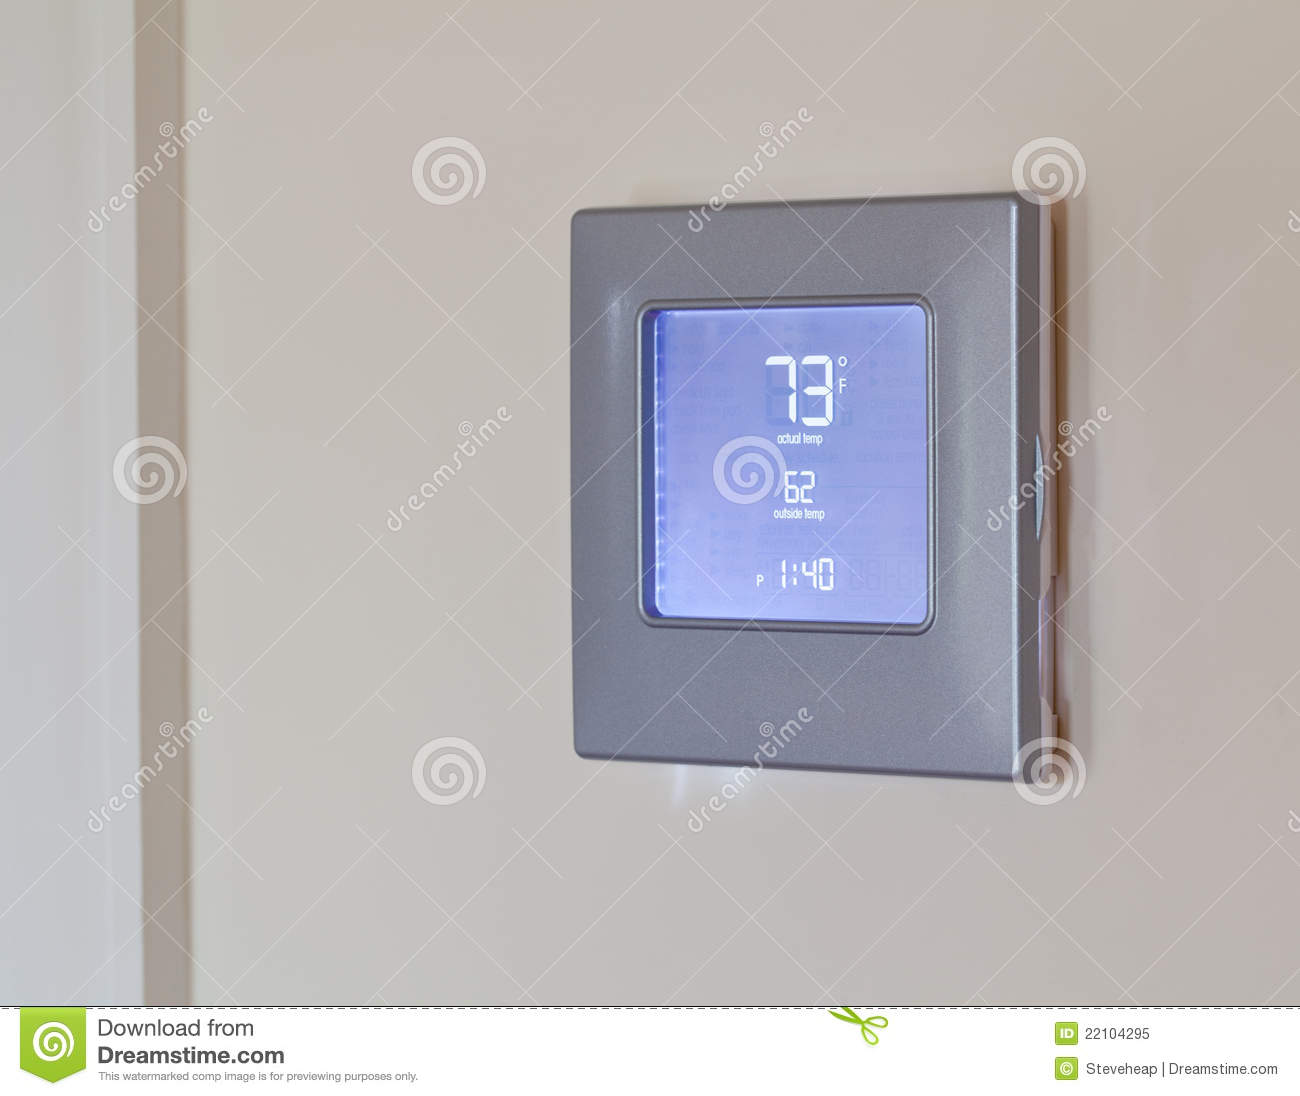 modern electronic thermostat royalty free stock photo image 22104295. Black Bedroom Furniture Sets. Home Design Ideas